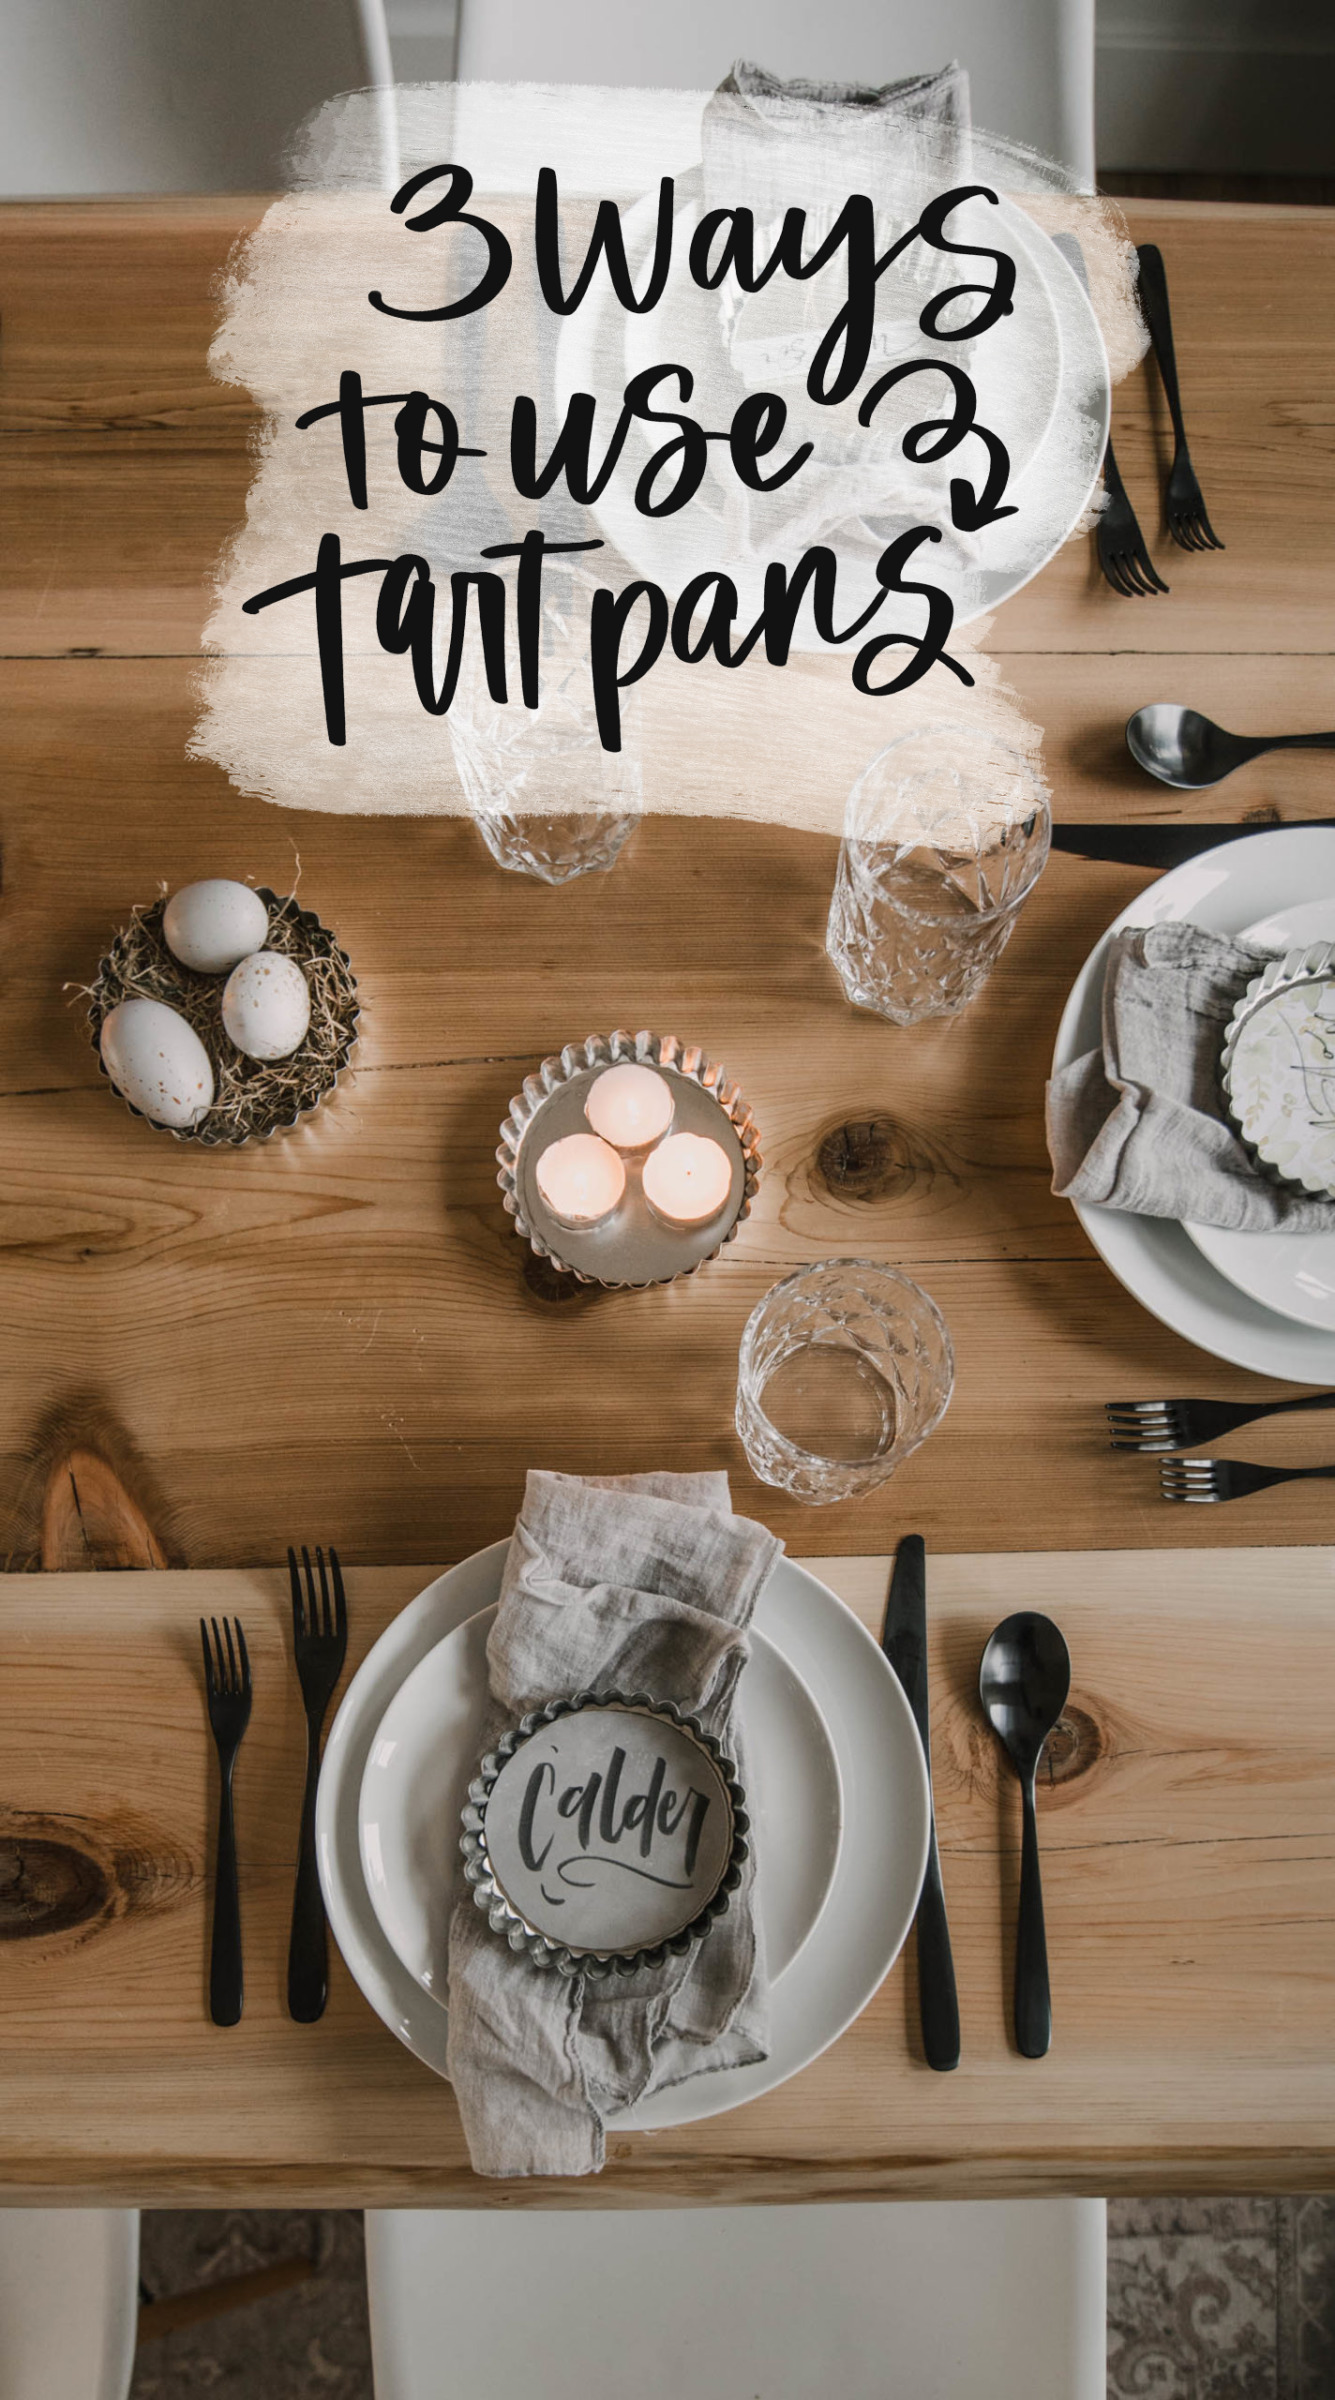 How to use tart pans for decor